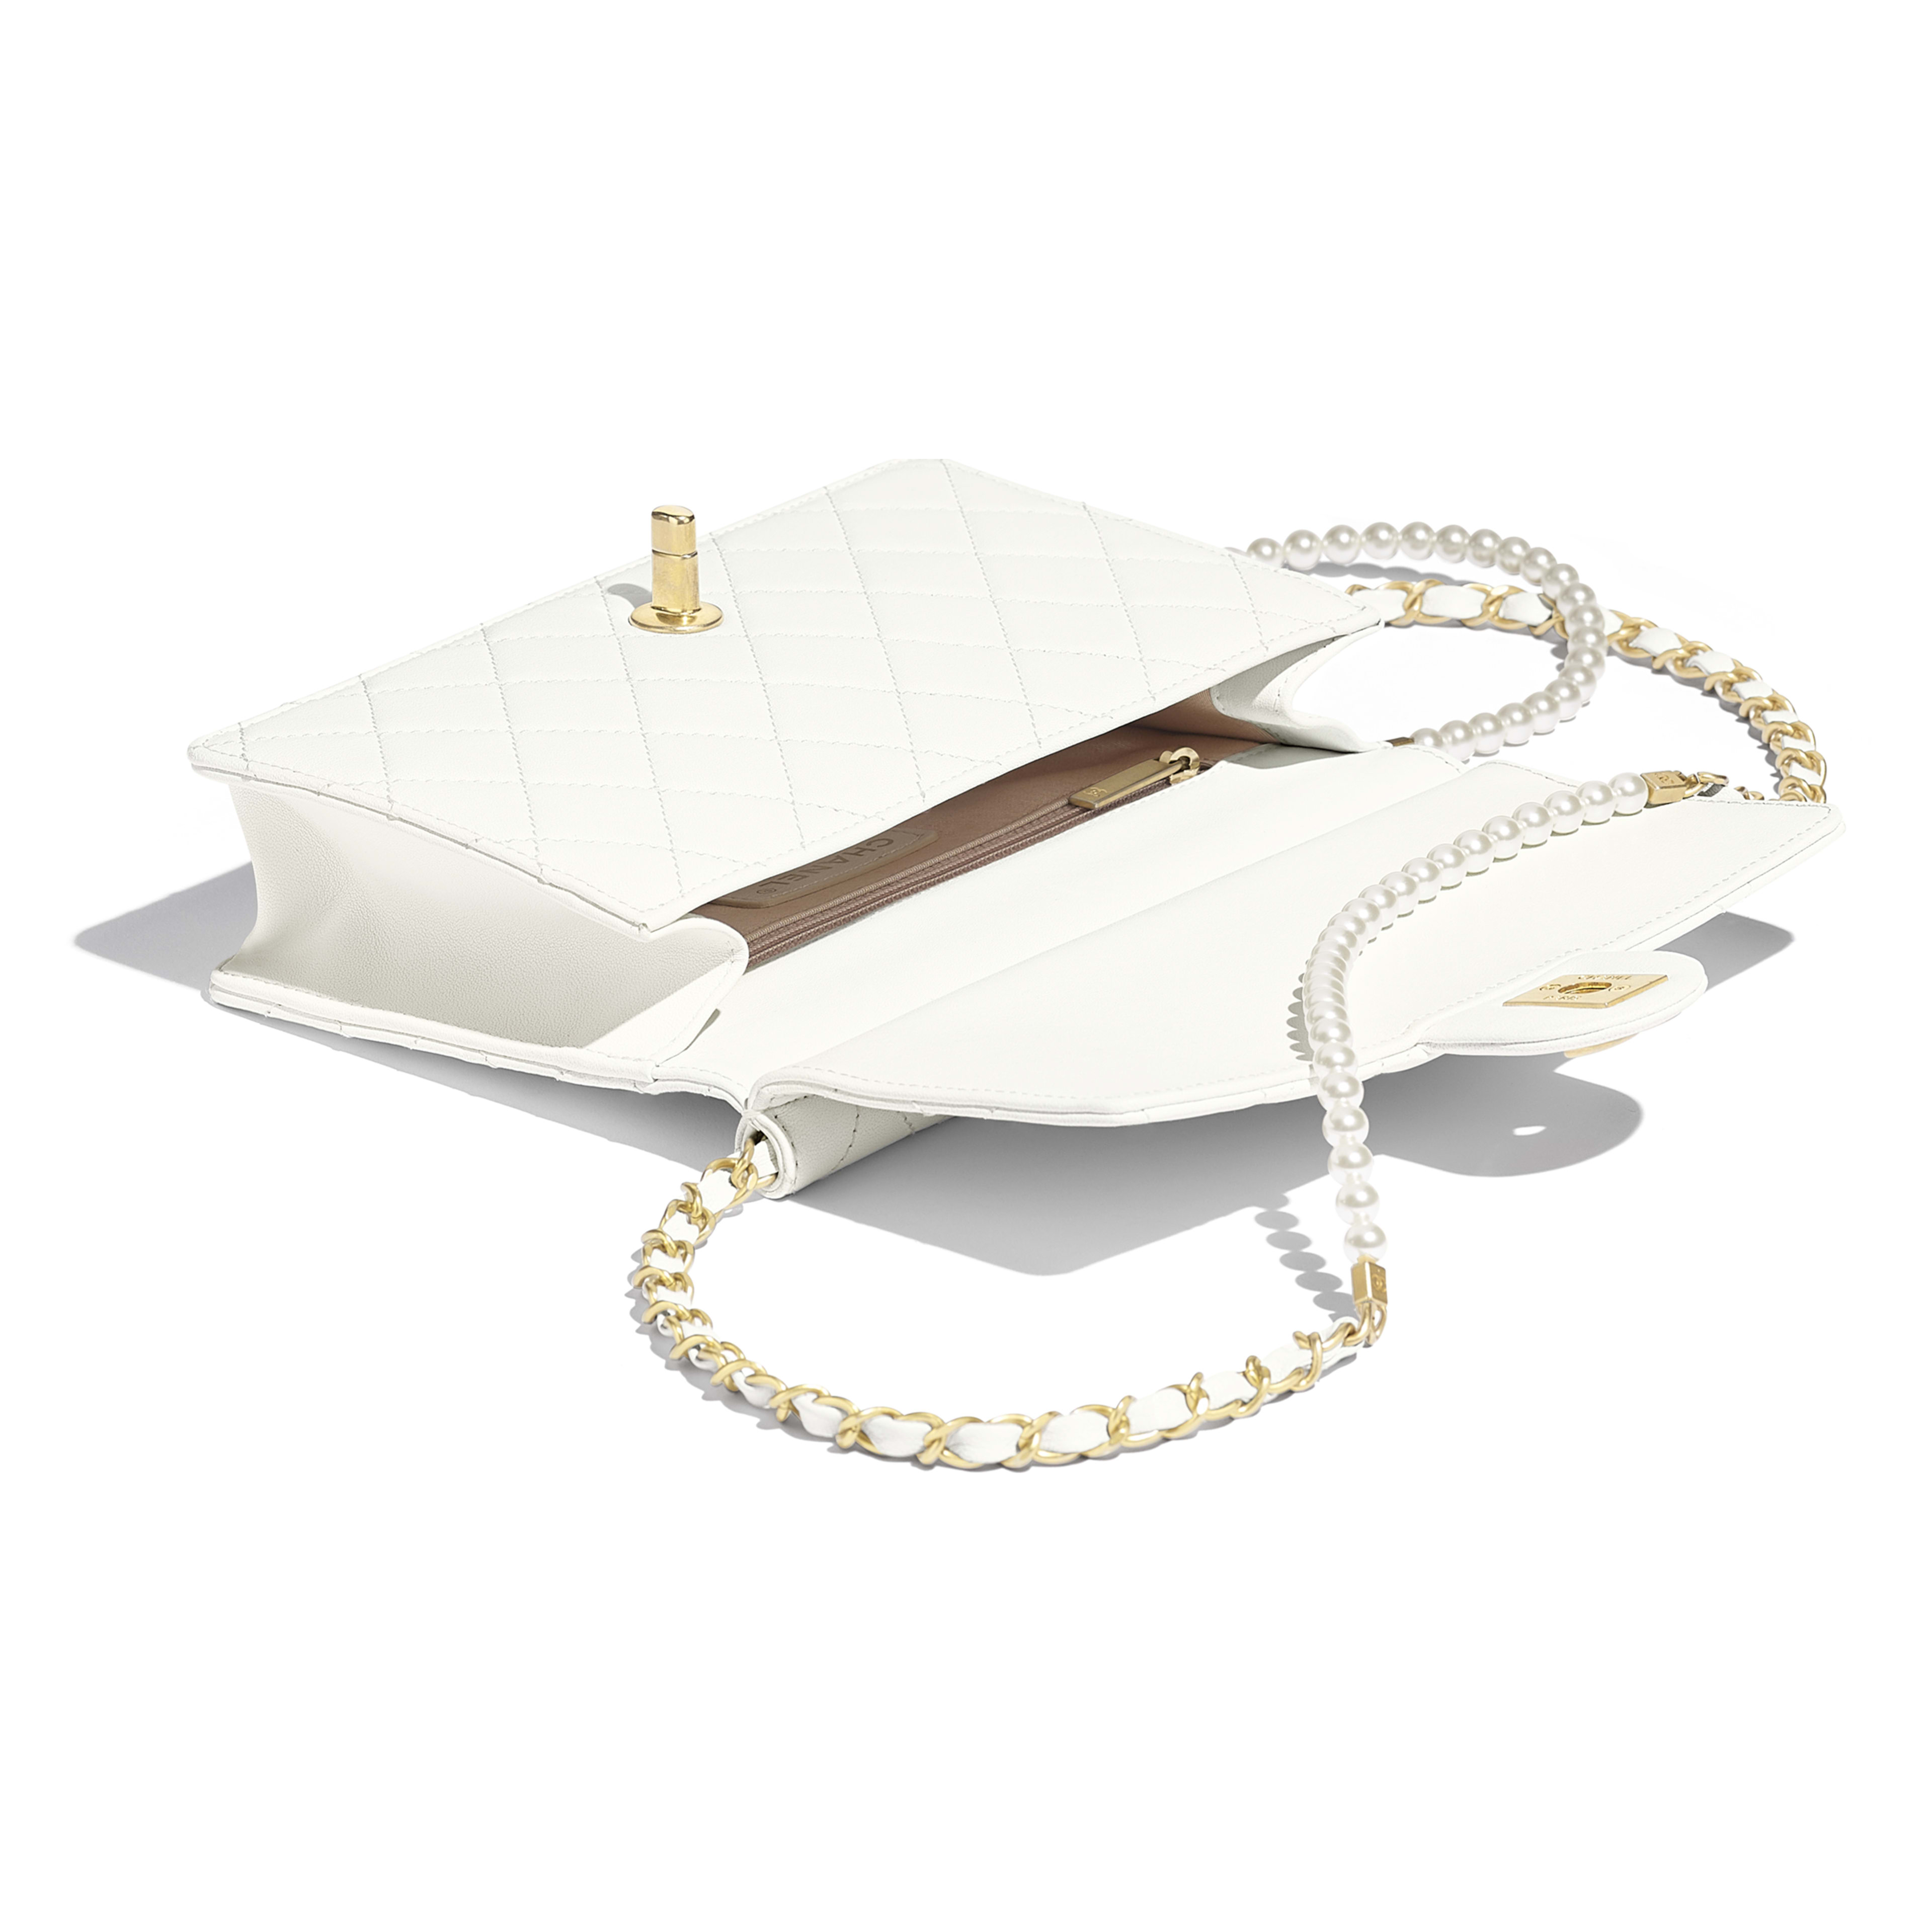 Flap Bag - White - Lambskin, Imitation Pearls & Gold-Tone Metal - Other view - see full sized version